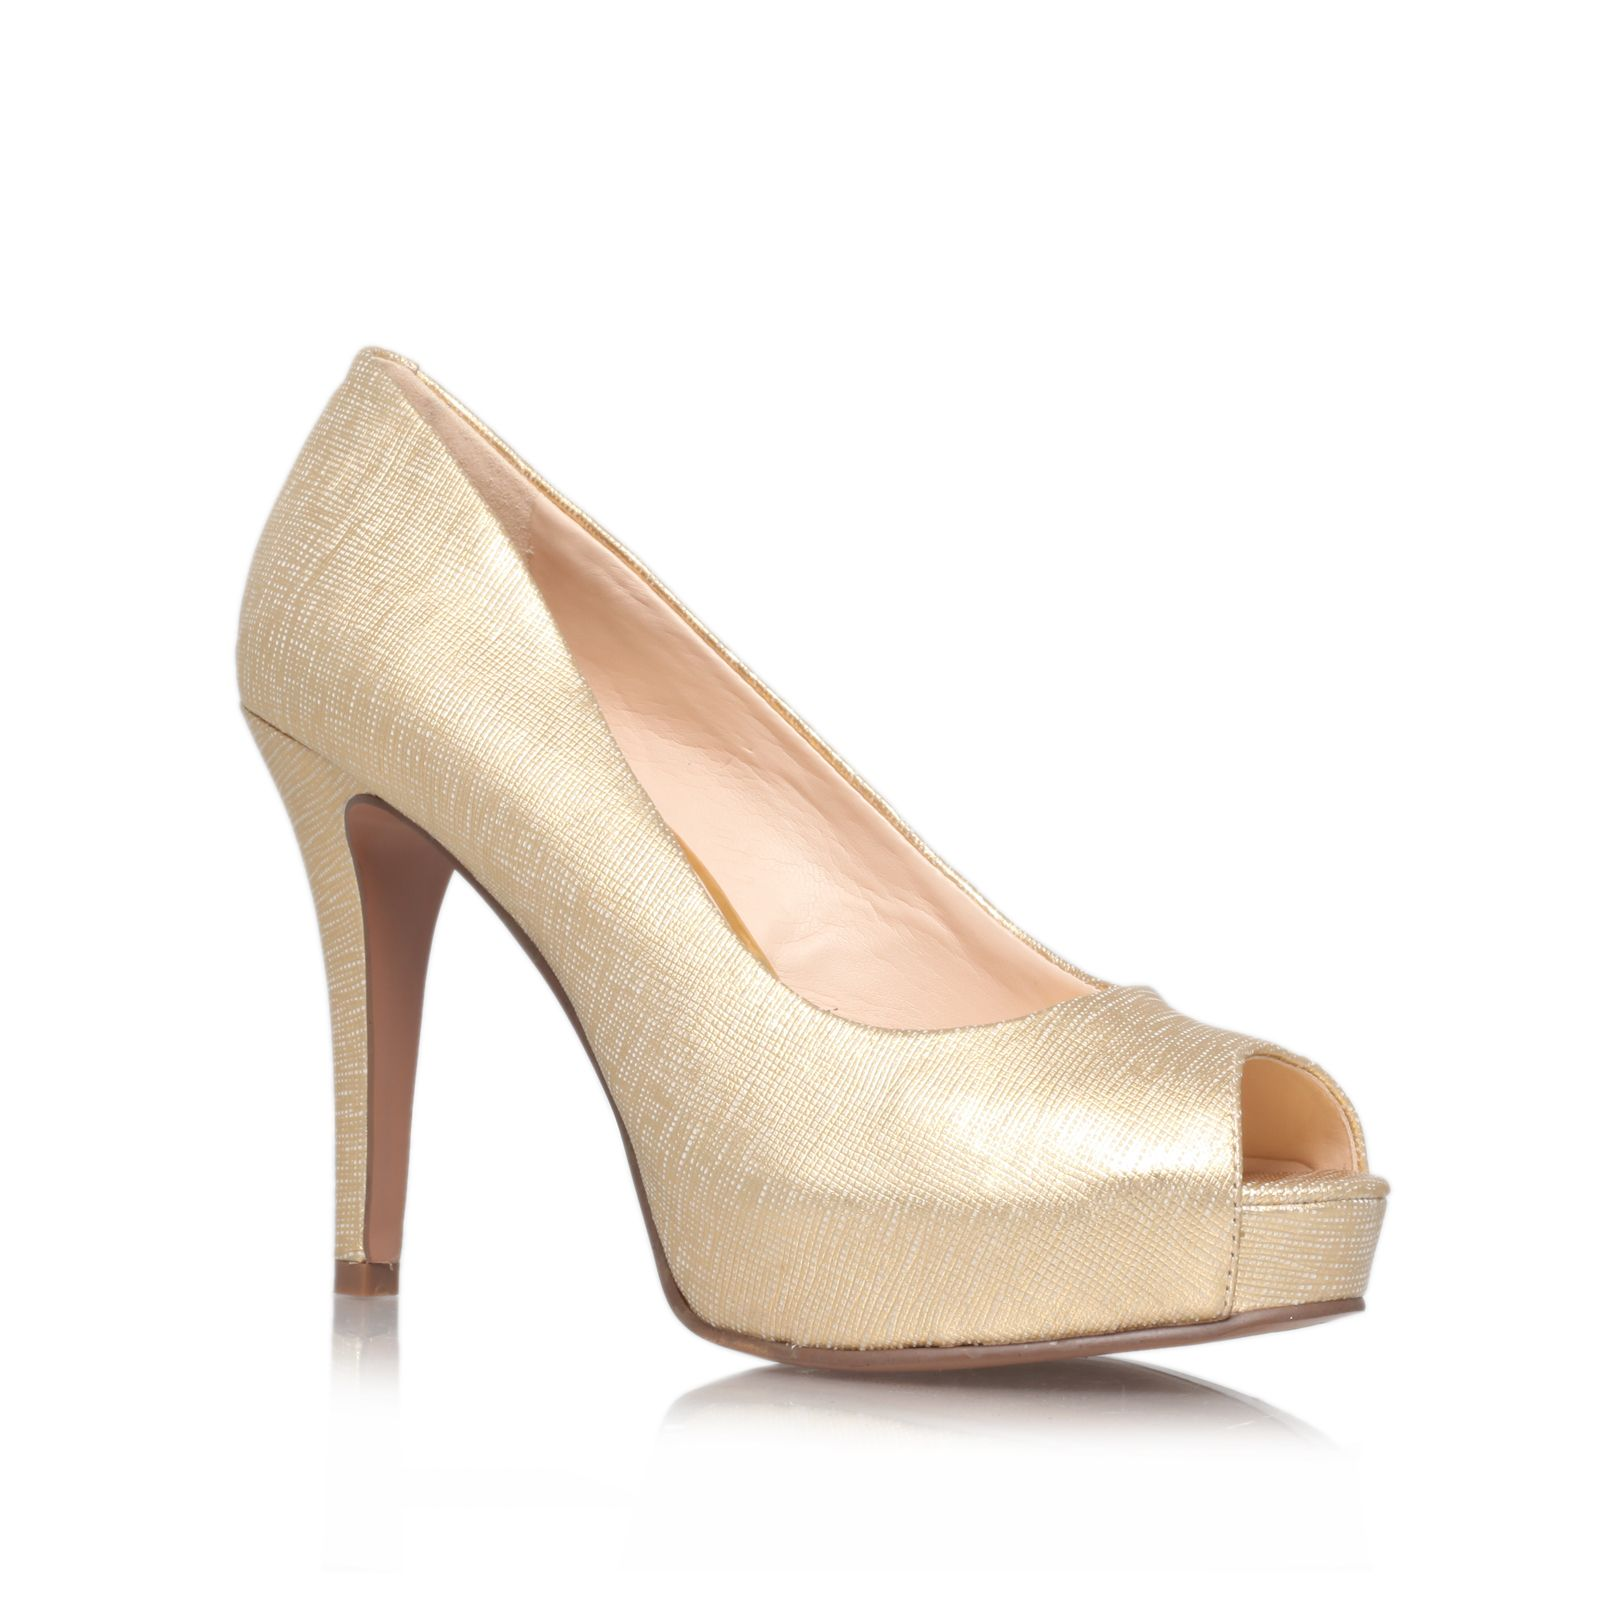 Camya20 high heel occasion shoes